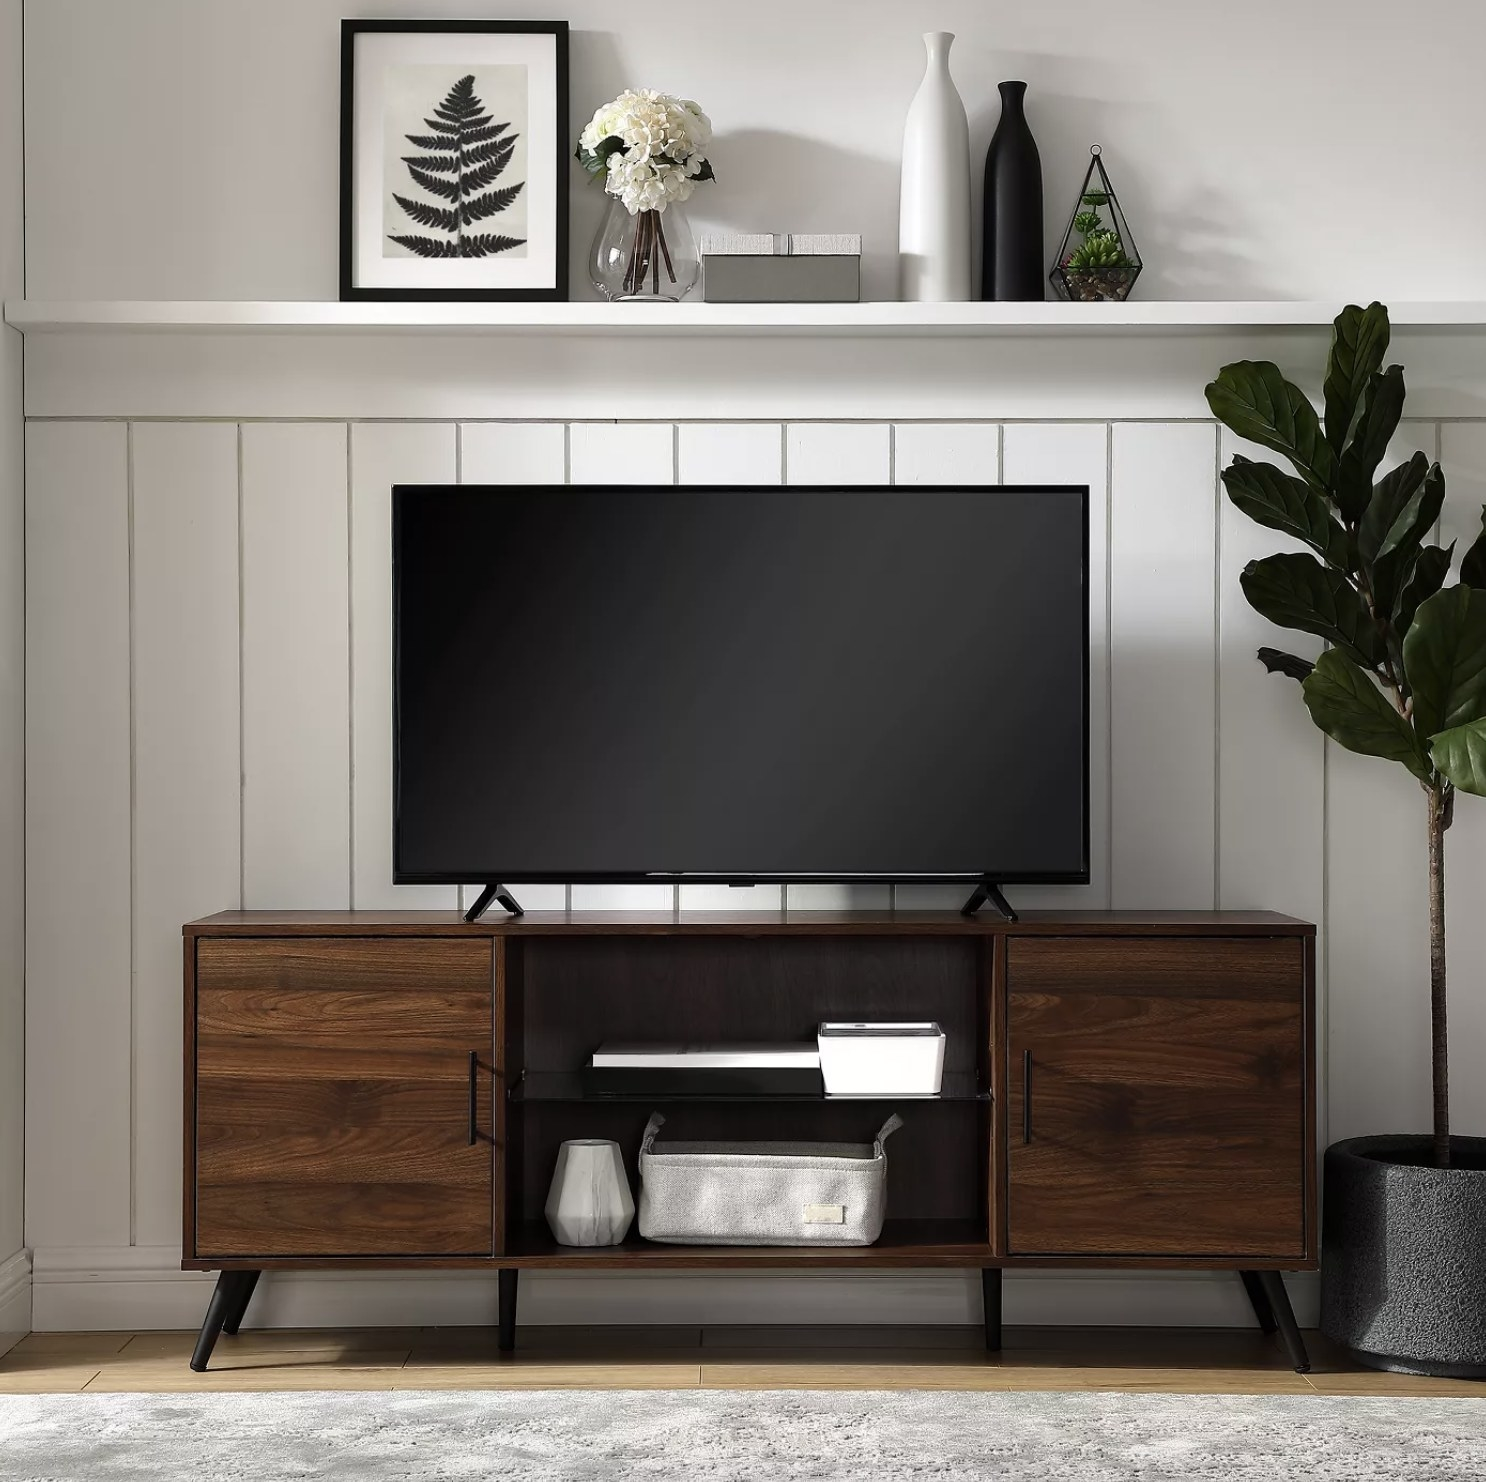 TV stand in living room.